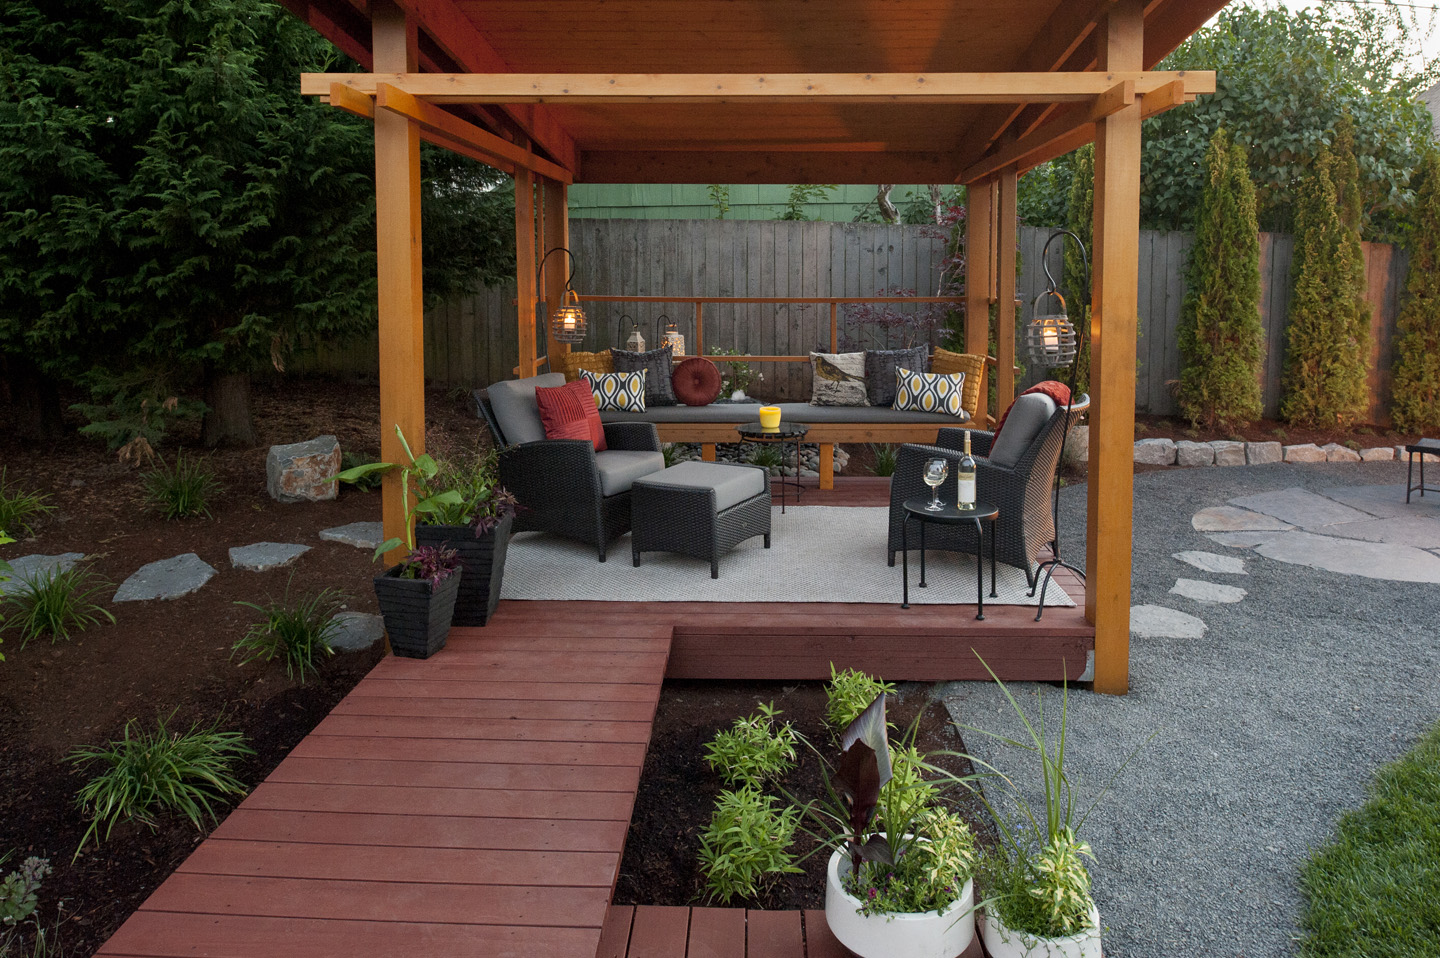 Backyard Lean-to Structure